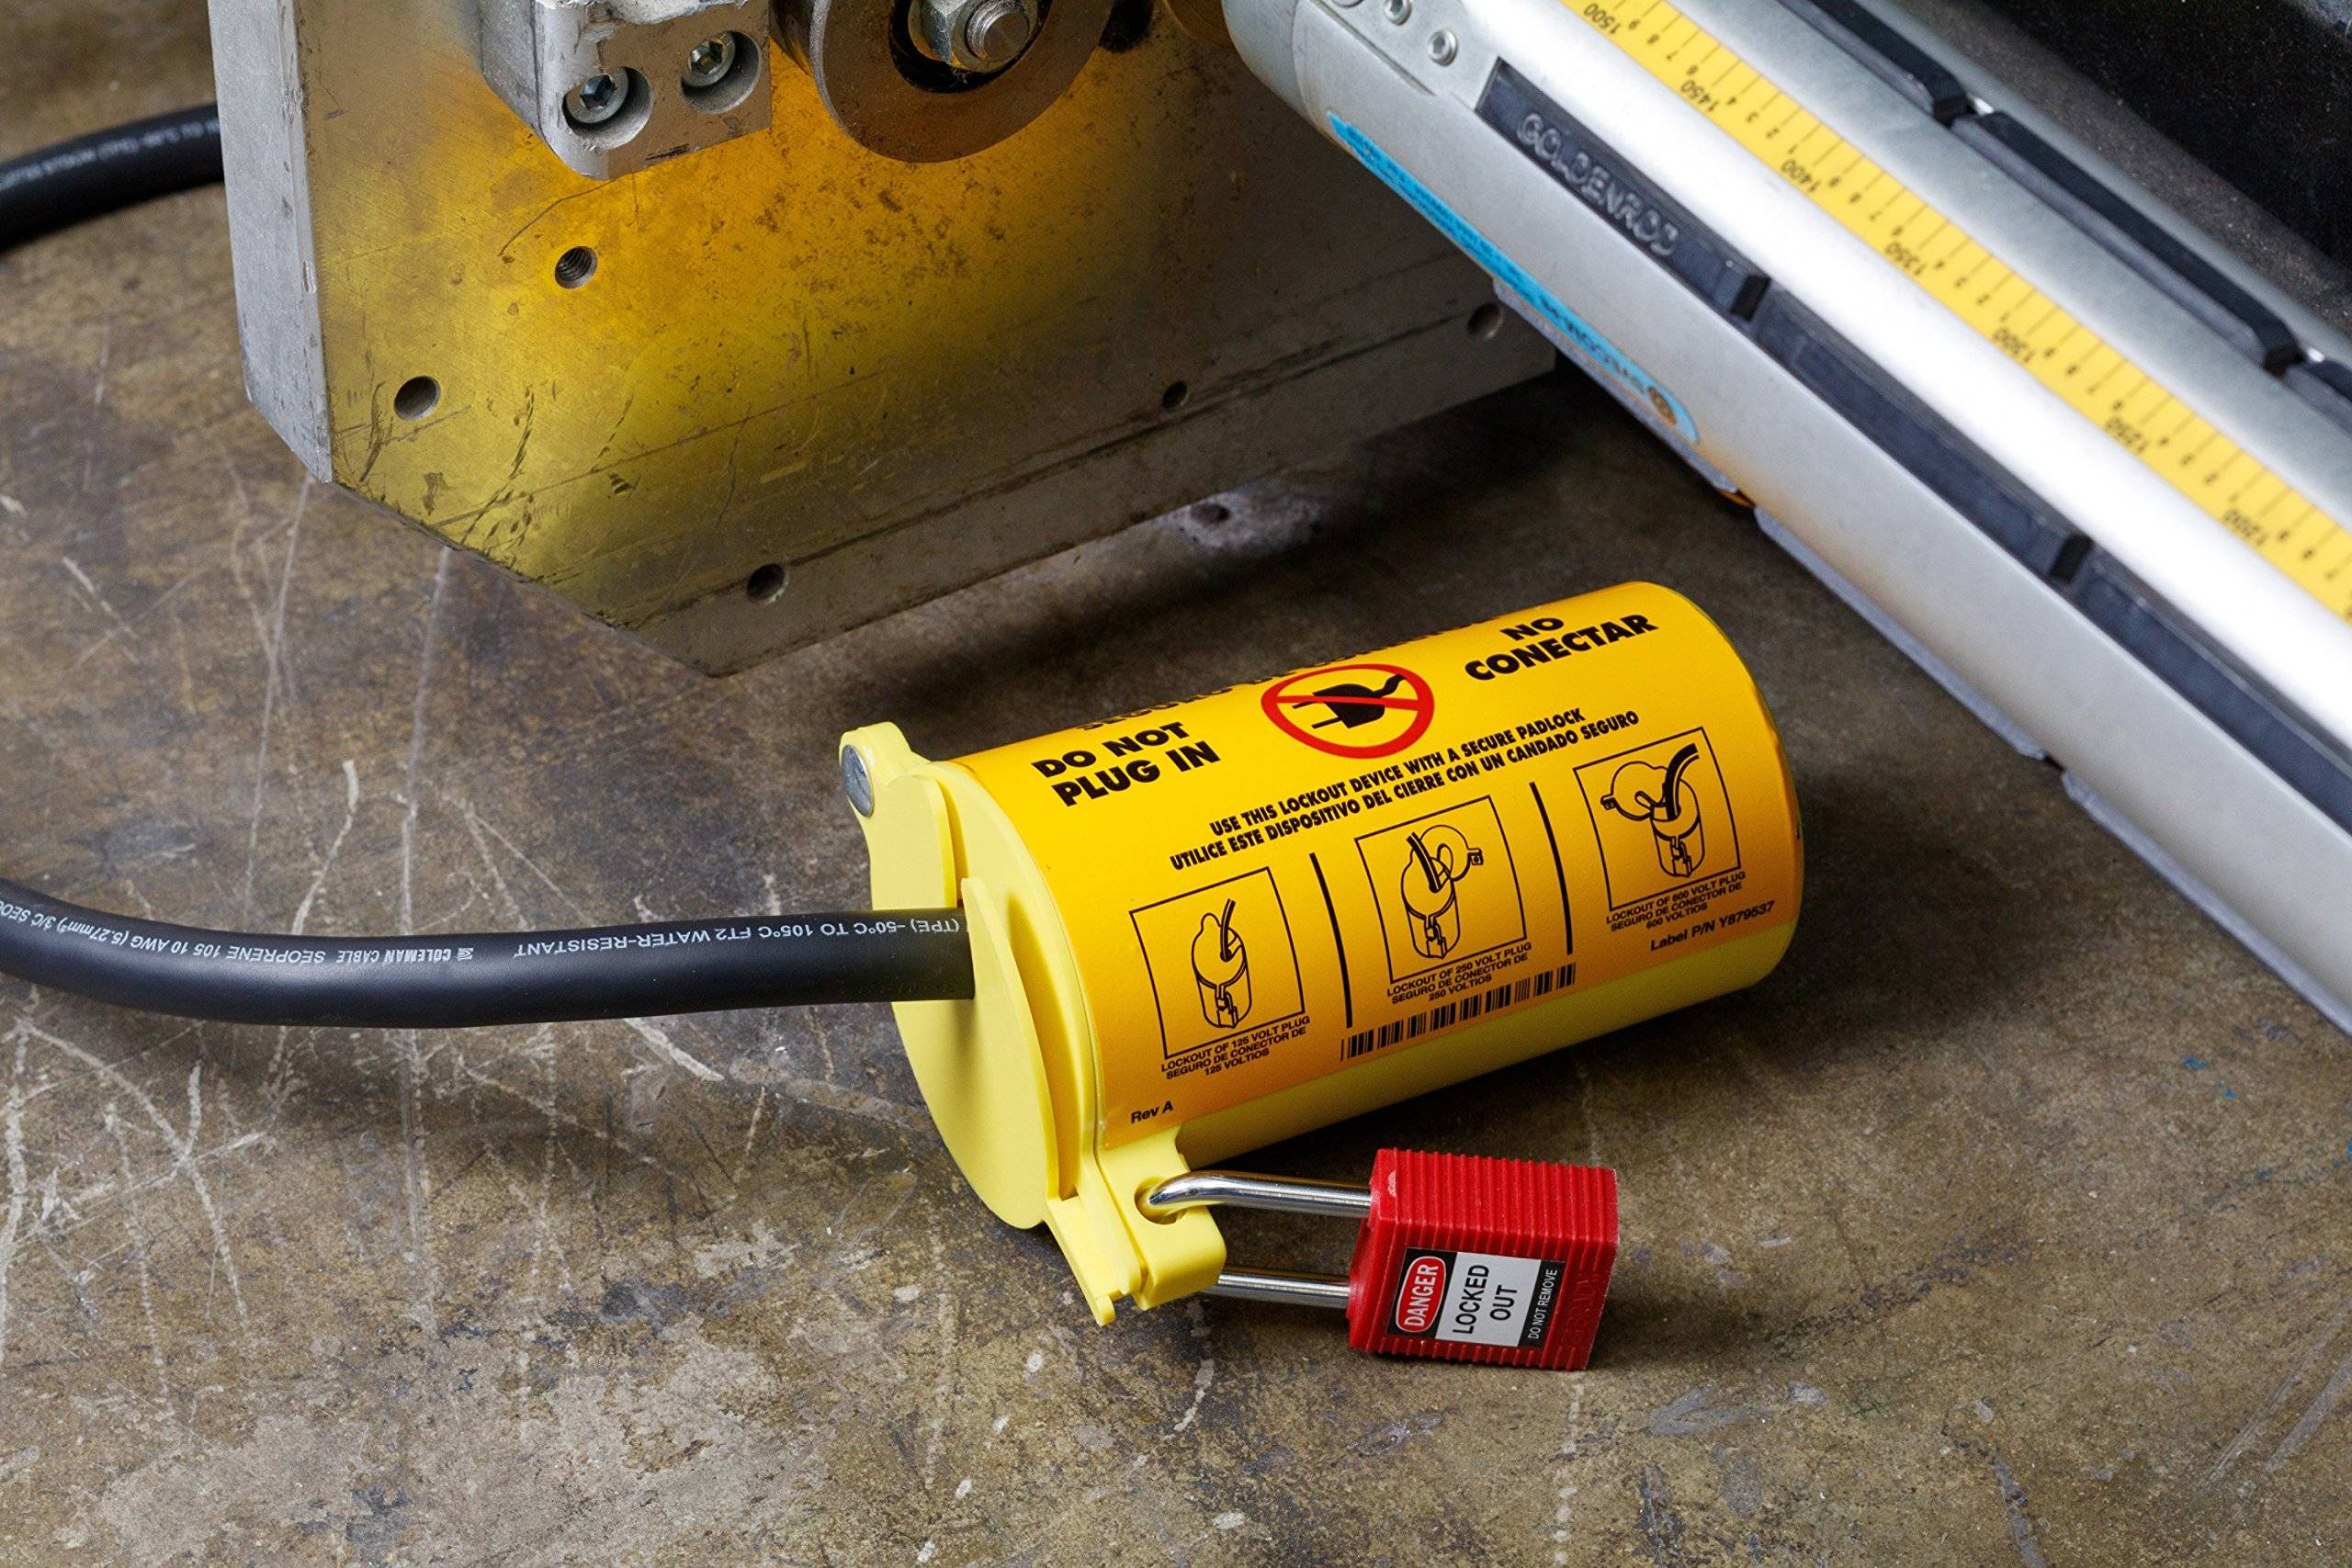 Lockout Tagout Device On A Plug